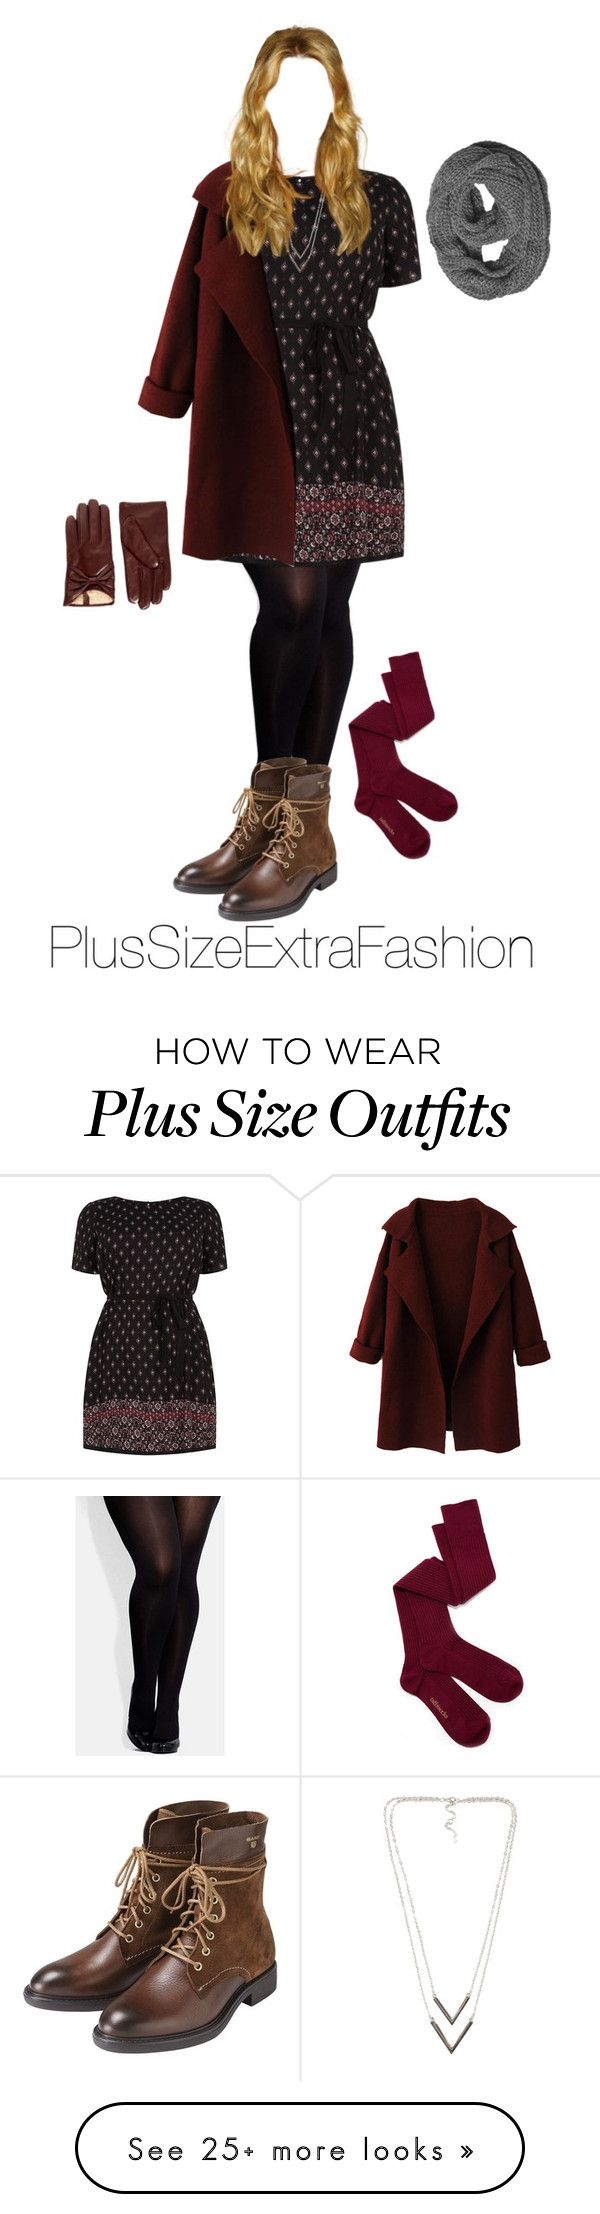 """Plus Size Winter Date Night Outfit ft. Dress and Boots"" by plussizeextrafashion on Polyvore featuring City Chic, GANT, NLY Accessories, WithChic, tabbisocks, women's clothing, women's fashion, women, female and woman"